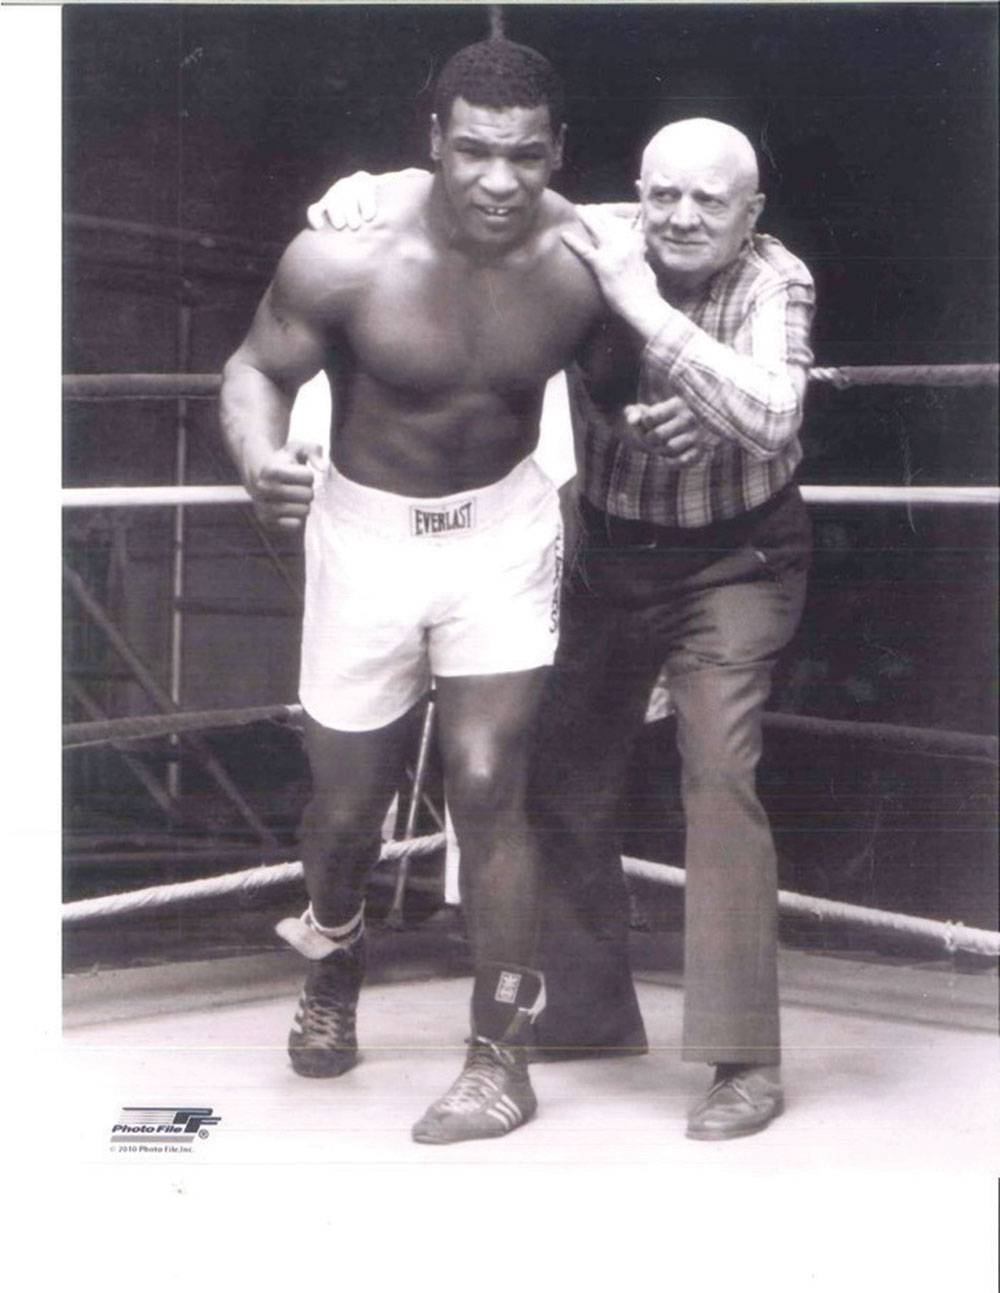 Tyson (age 17) with his boxing trainer and mentor, Cus D'Amato